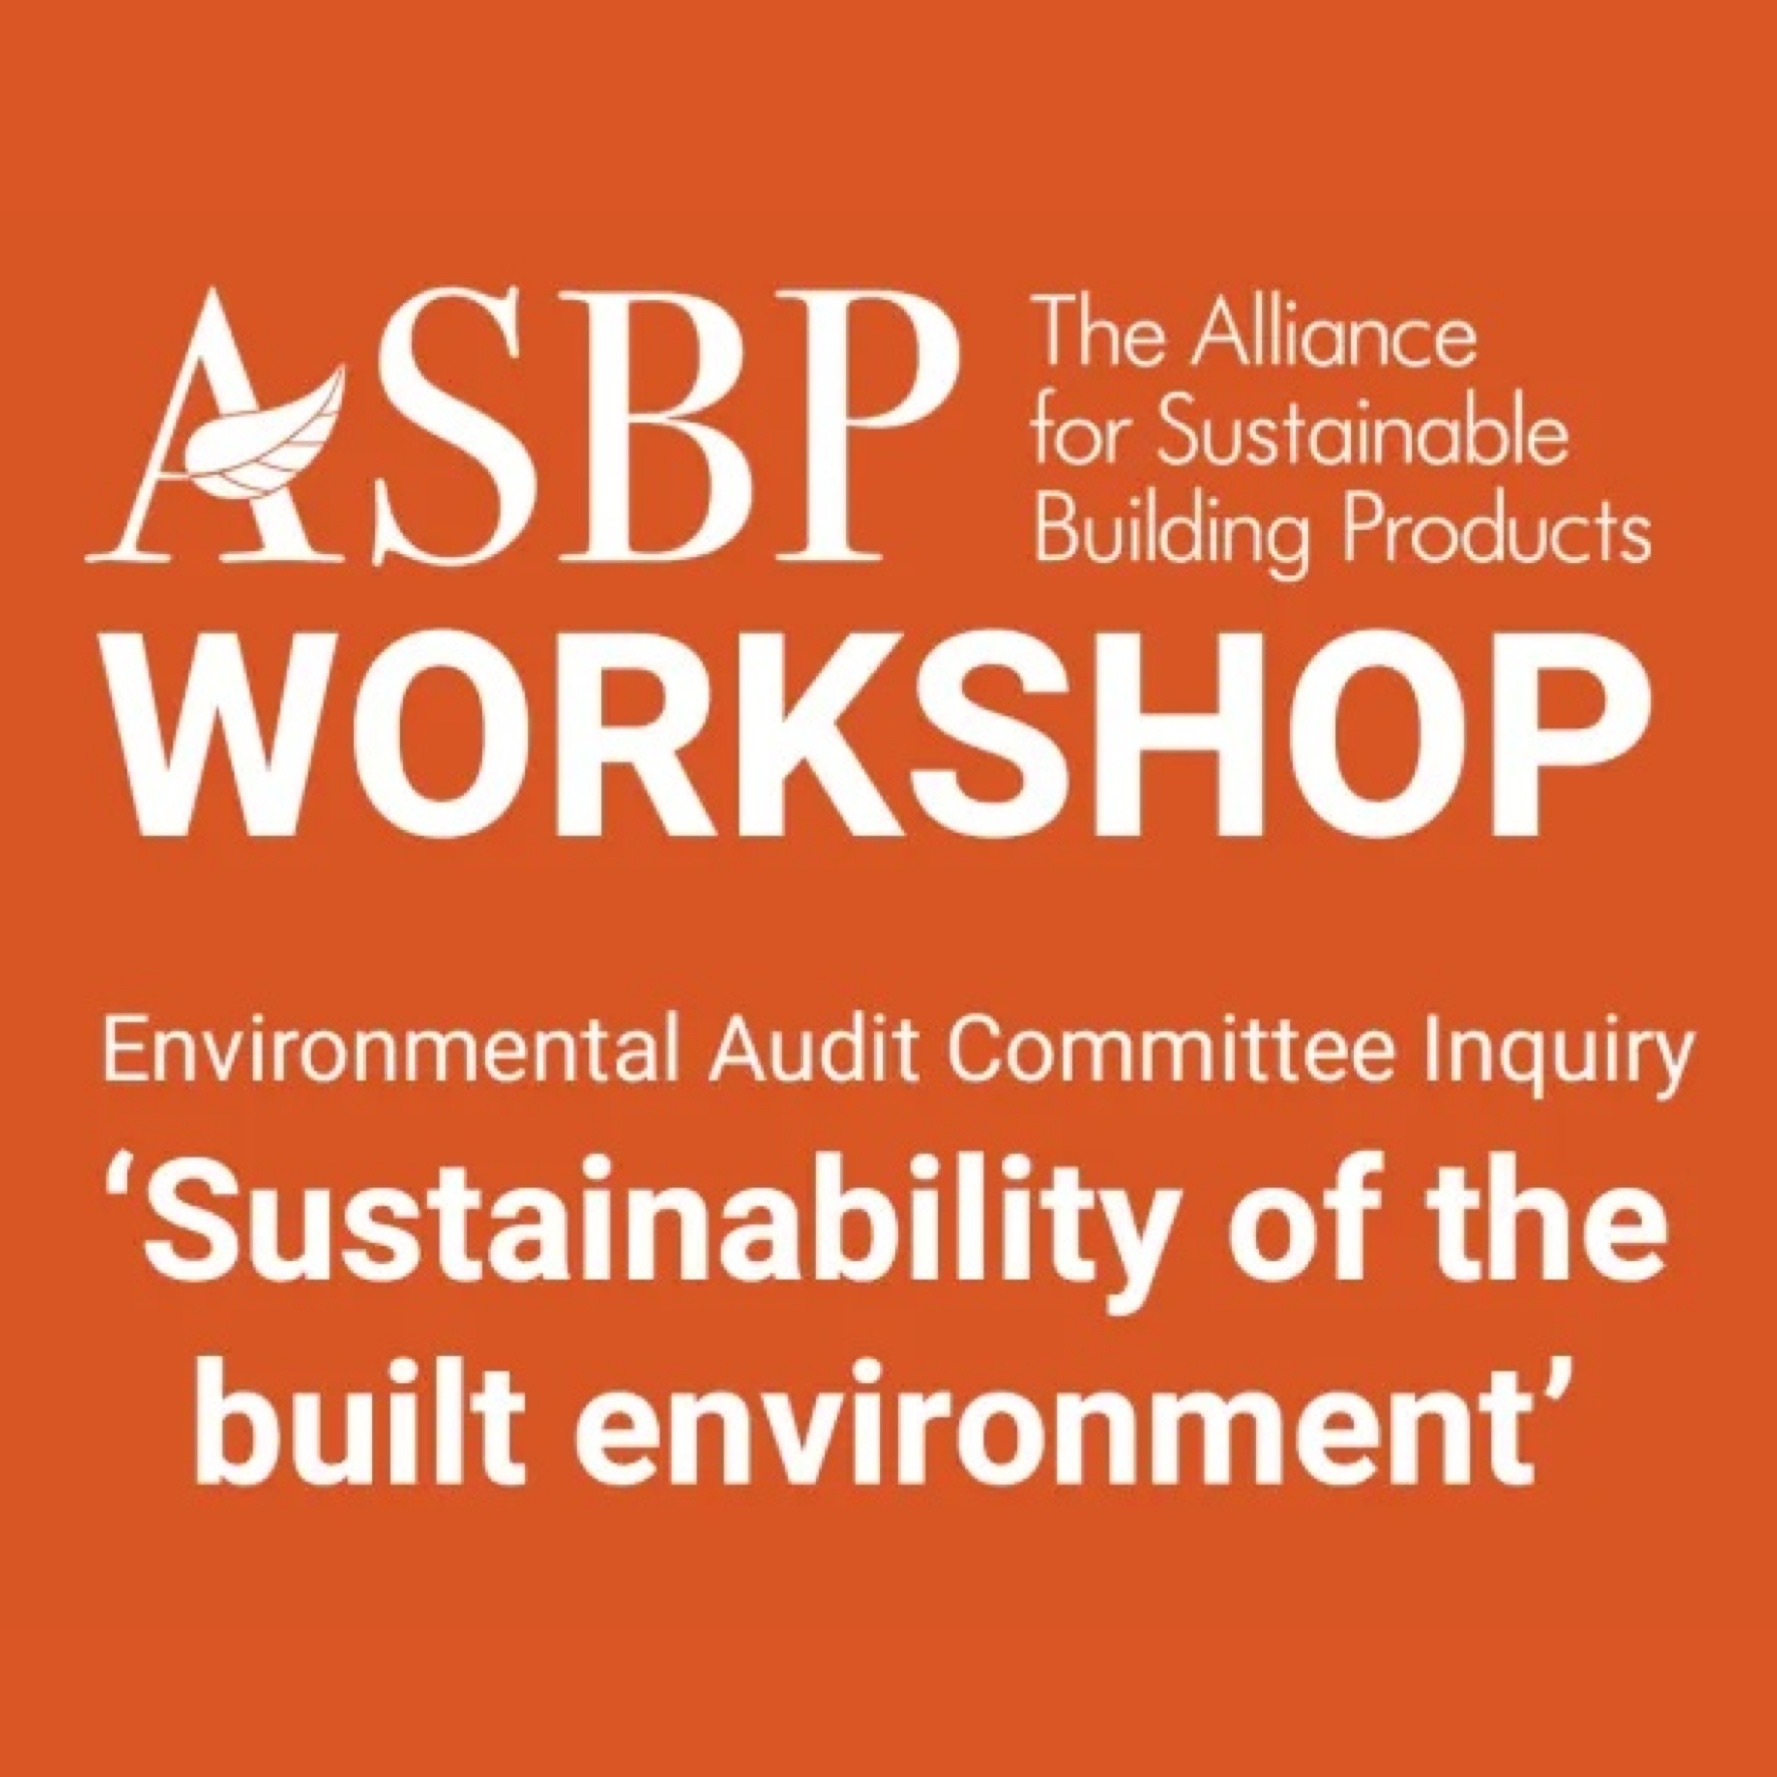 ASBP Workshop: EAC Inquiry - Sustainability of the Built Environment